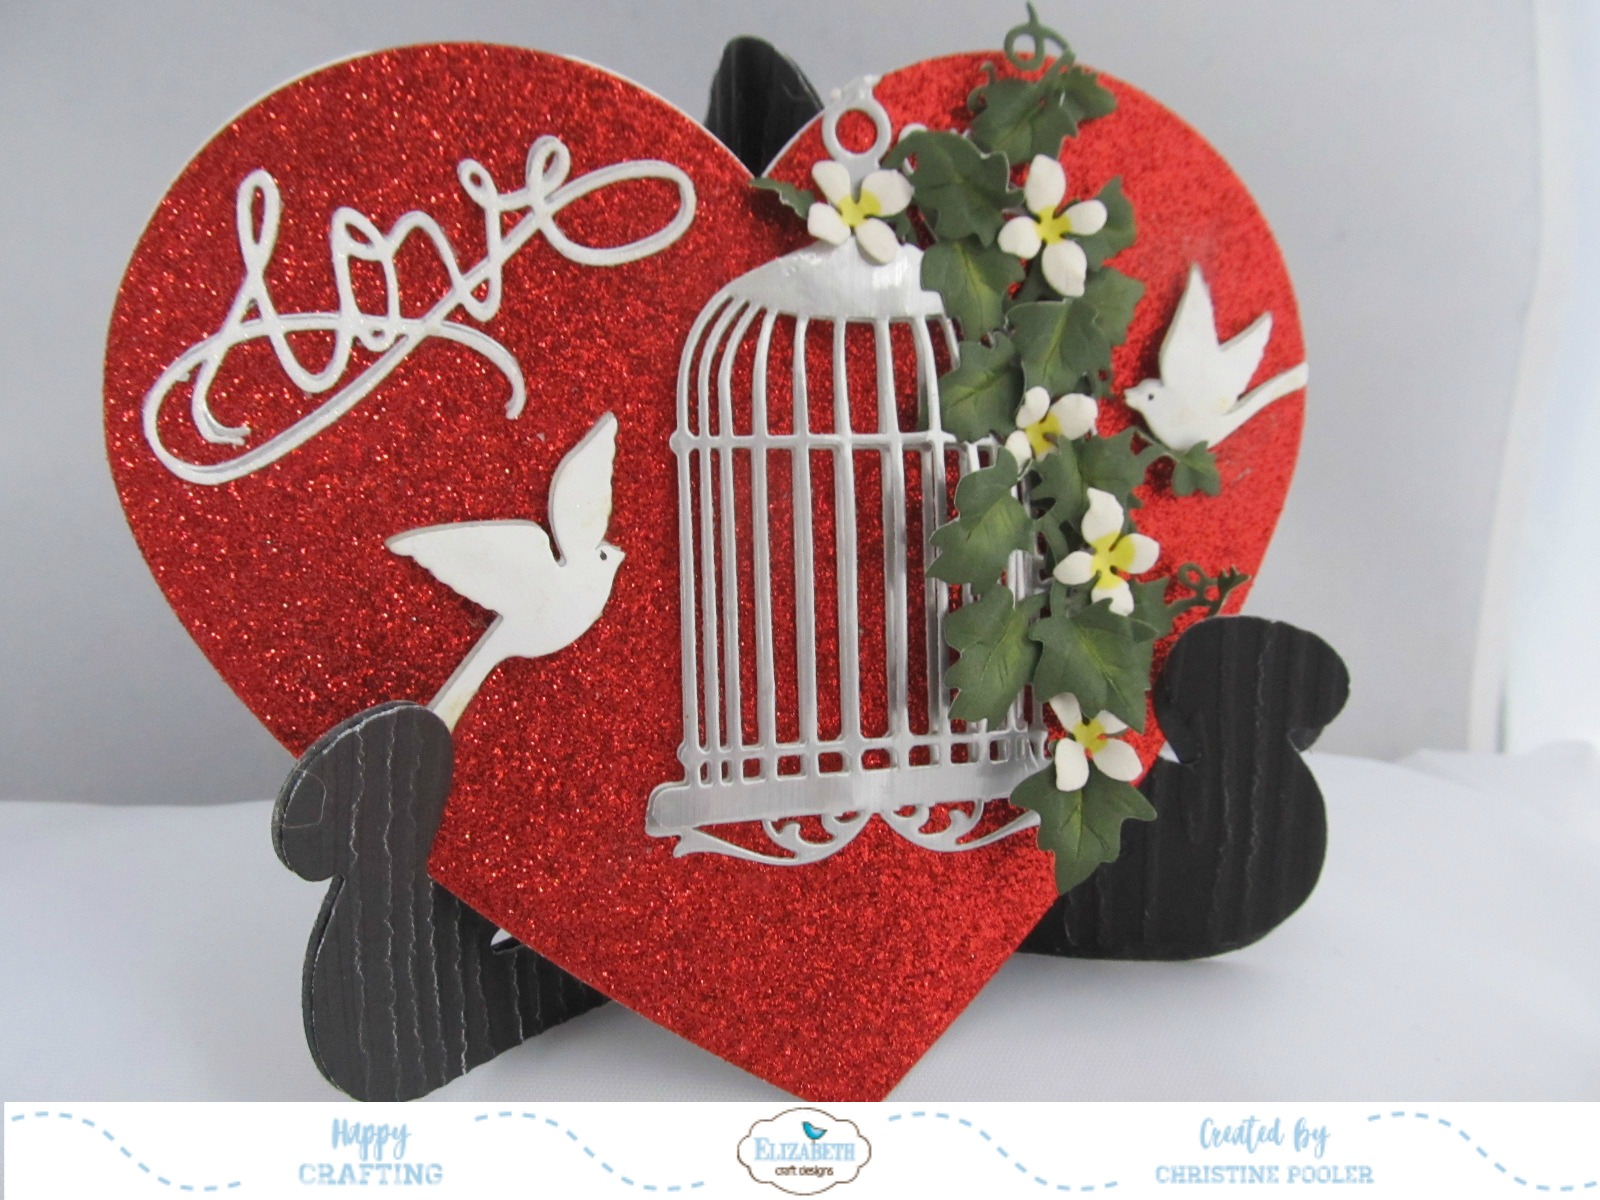 2018-01-06 Cage of Love1